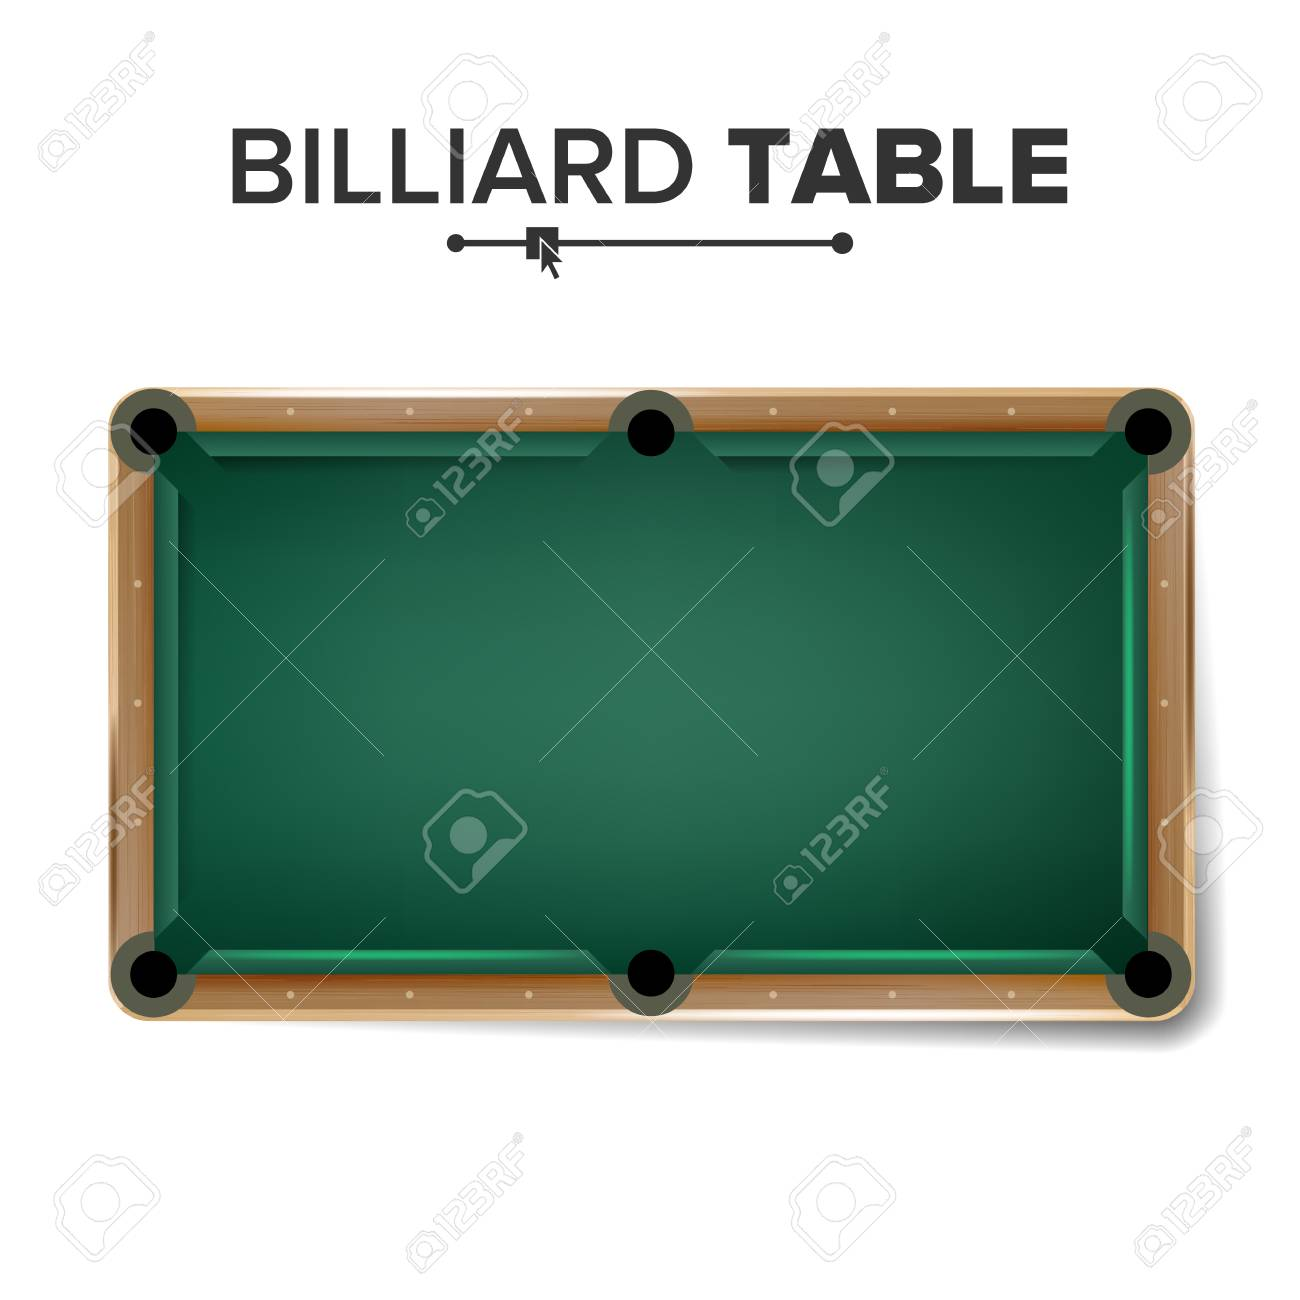 Billiard Table Vector. Classic Green Pool Table. Top View. Isolated  Illustration Stock Vector